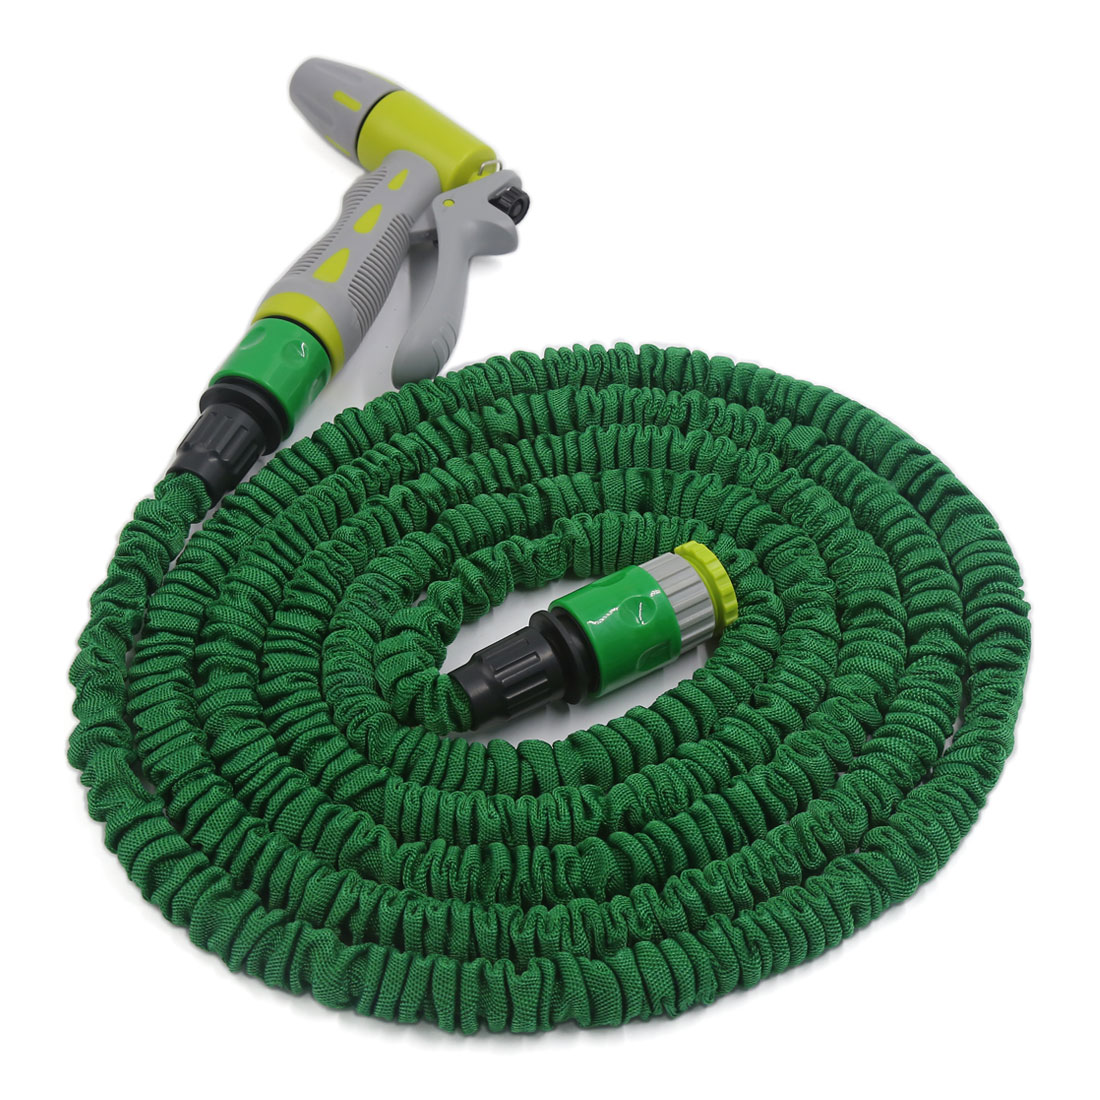 3 Meter Green Flexible Hose Car Home Garden Water Spray Gun Sprayer Sprinkler Washing Tool